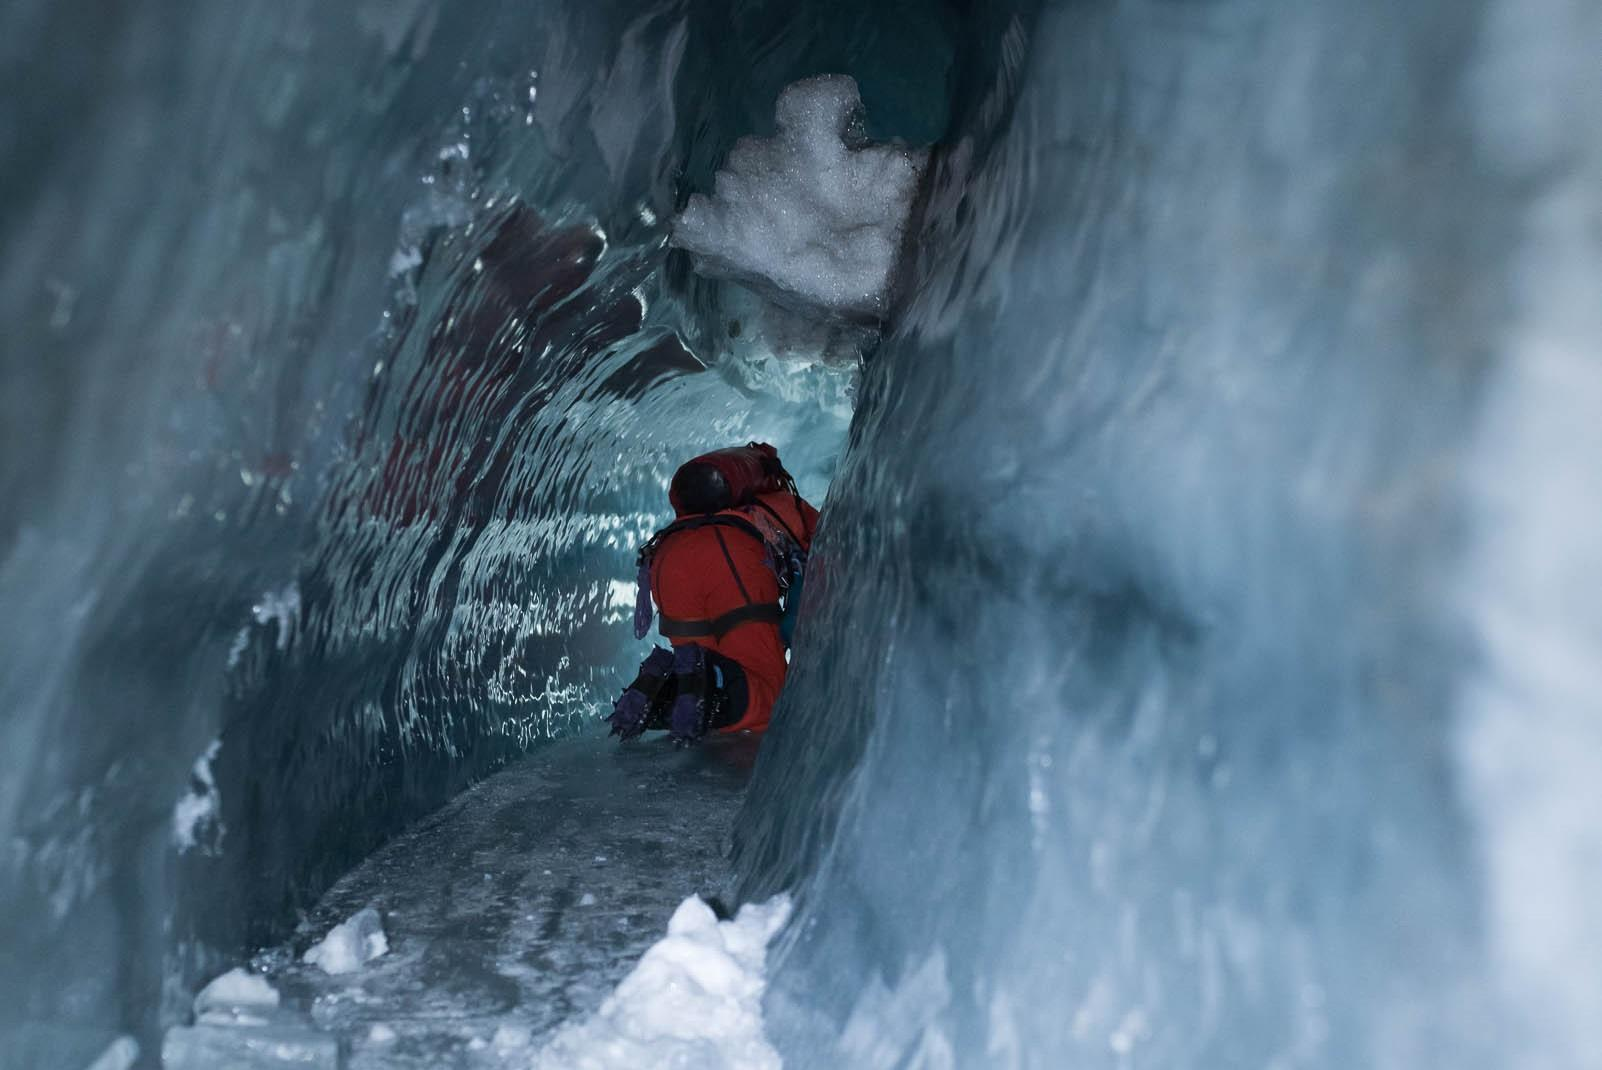 Man crawls through narrow icy tunnel on all fours